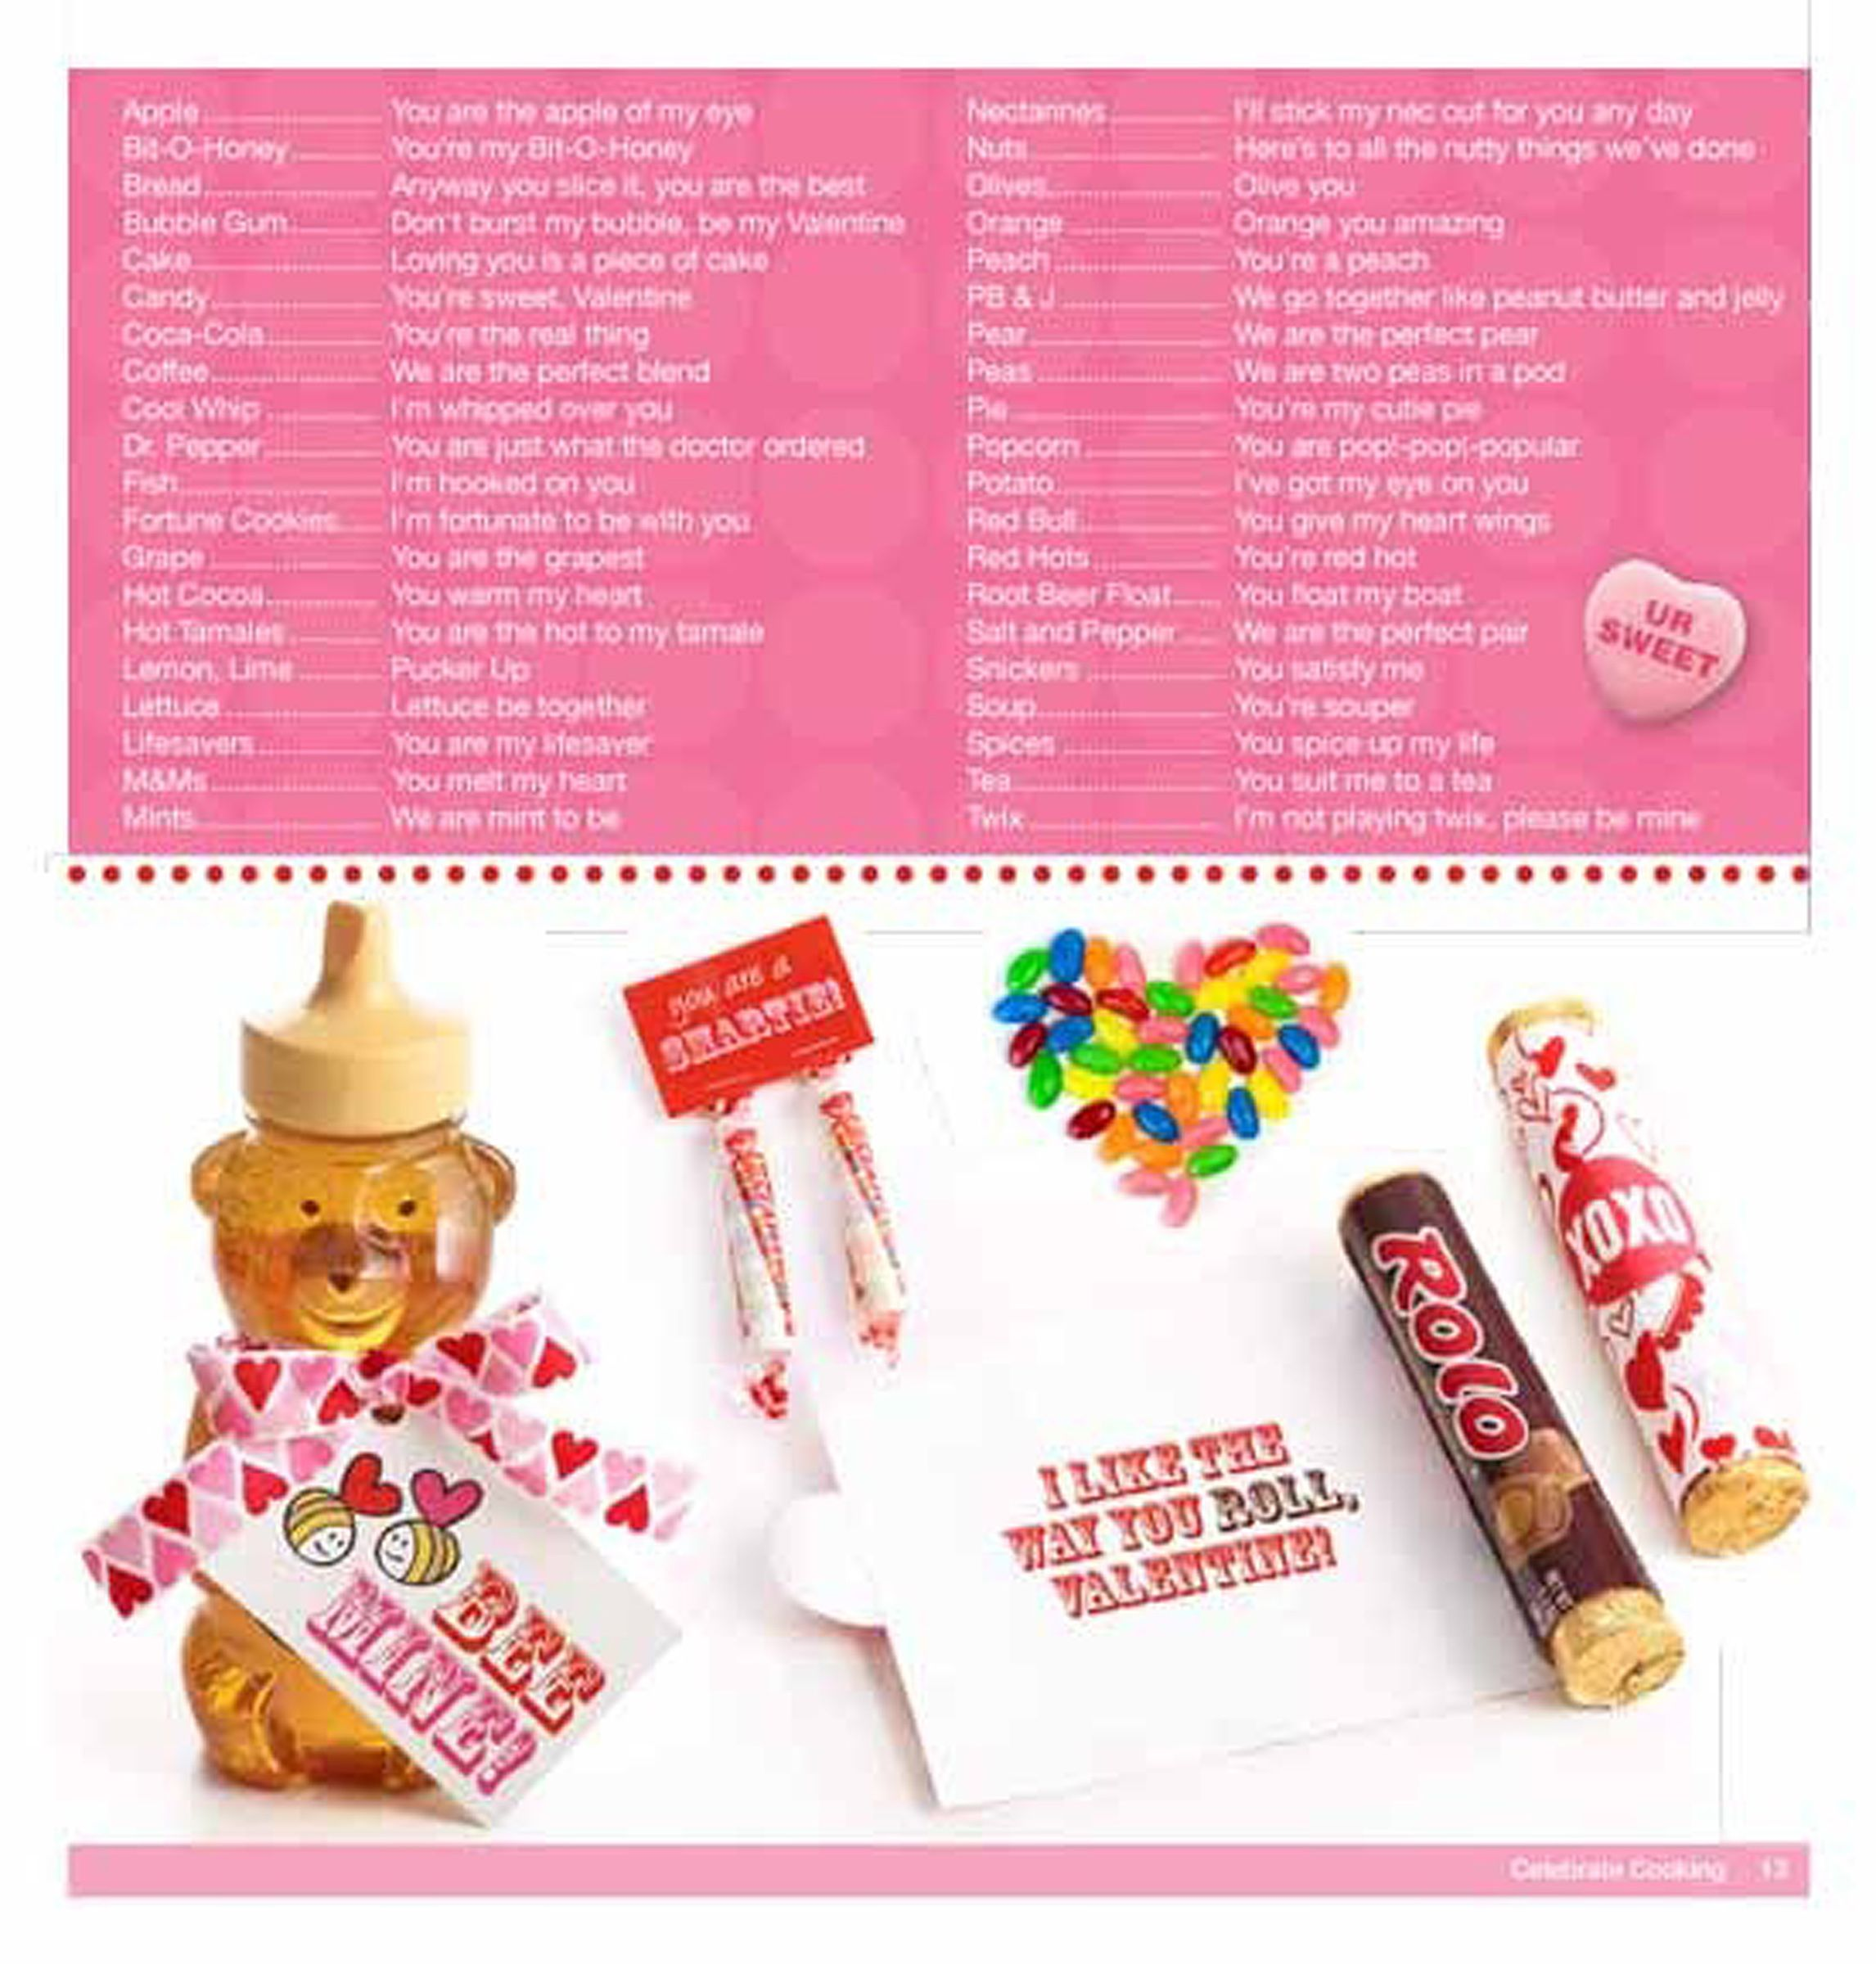 List of cute sayings to go with candy, etc. for valentines